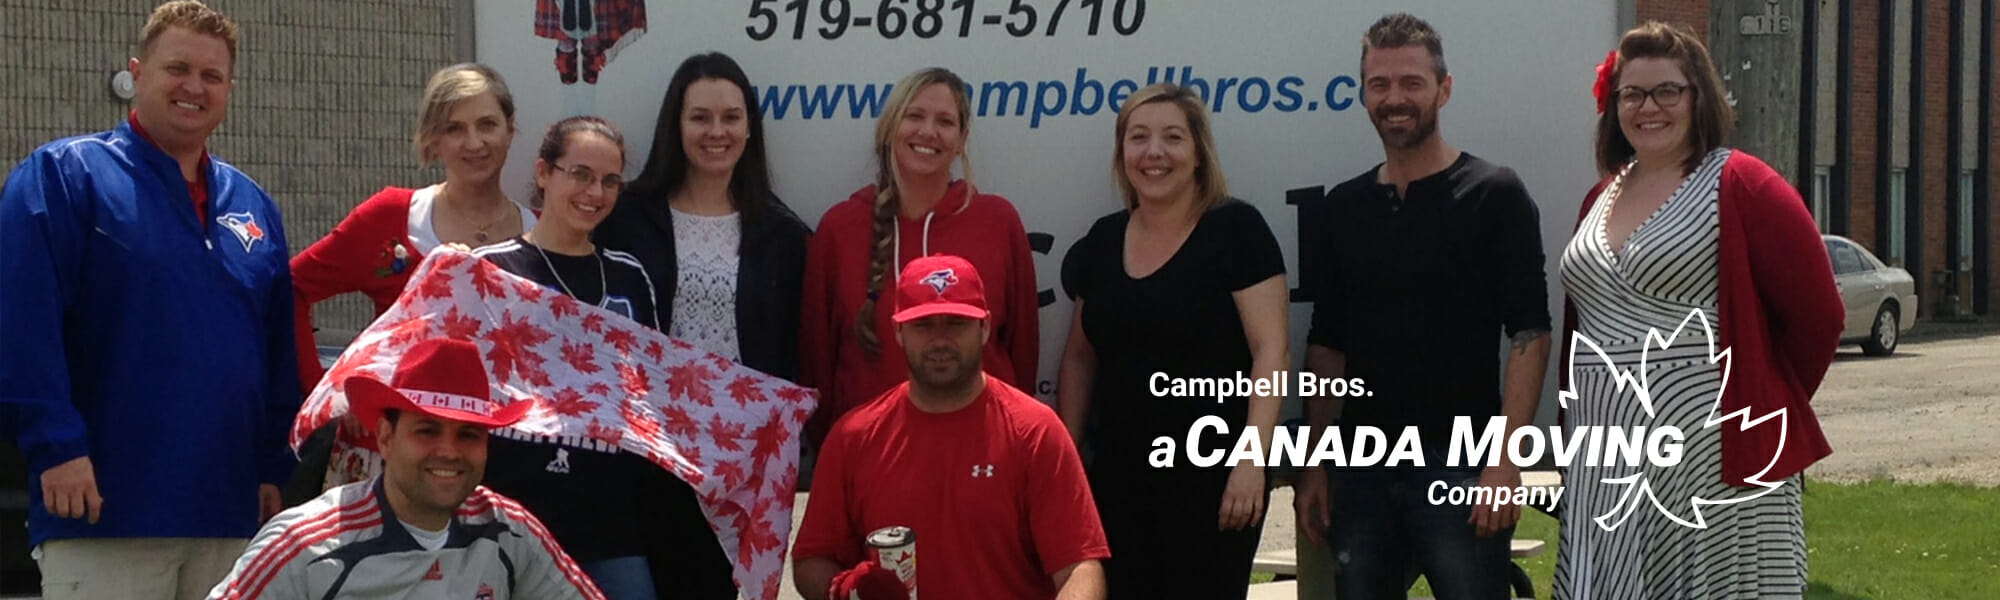 campbell bros london canada-moving